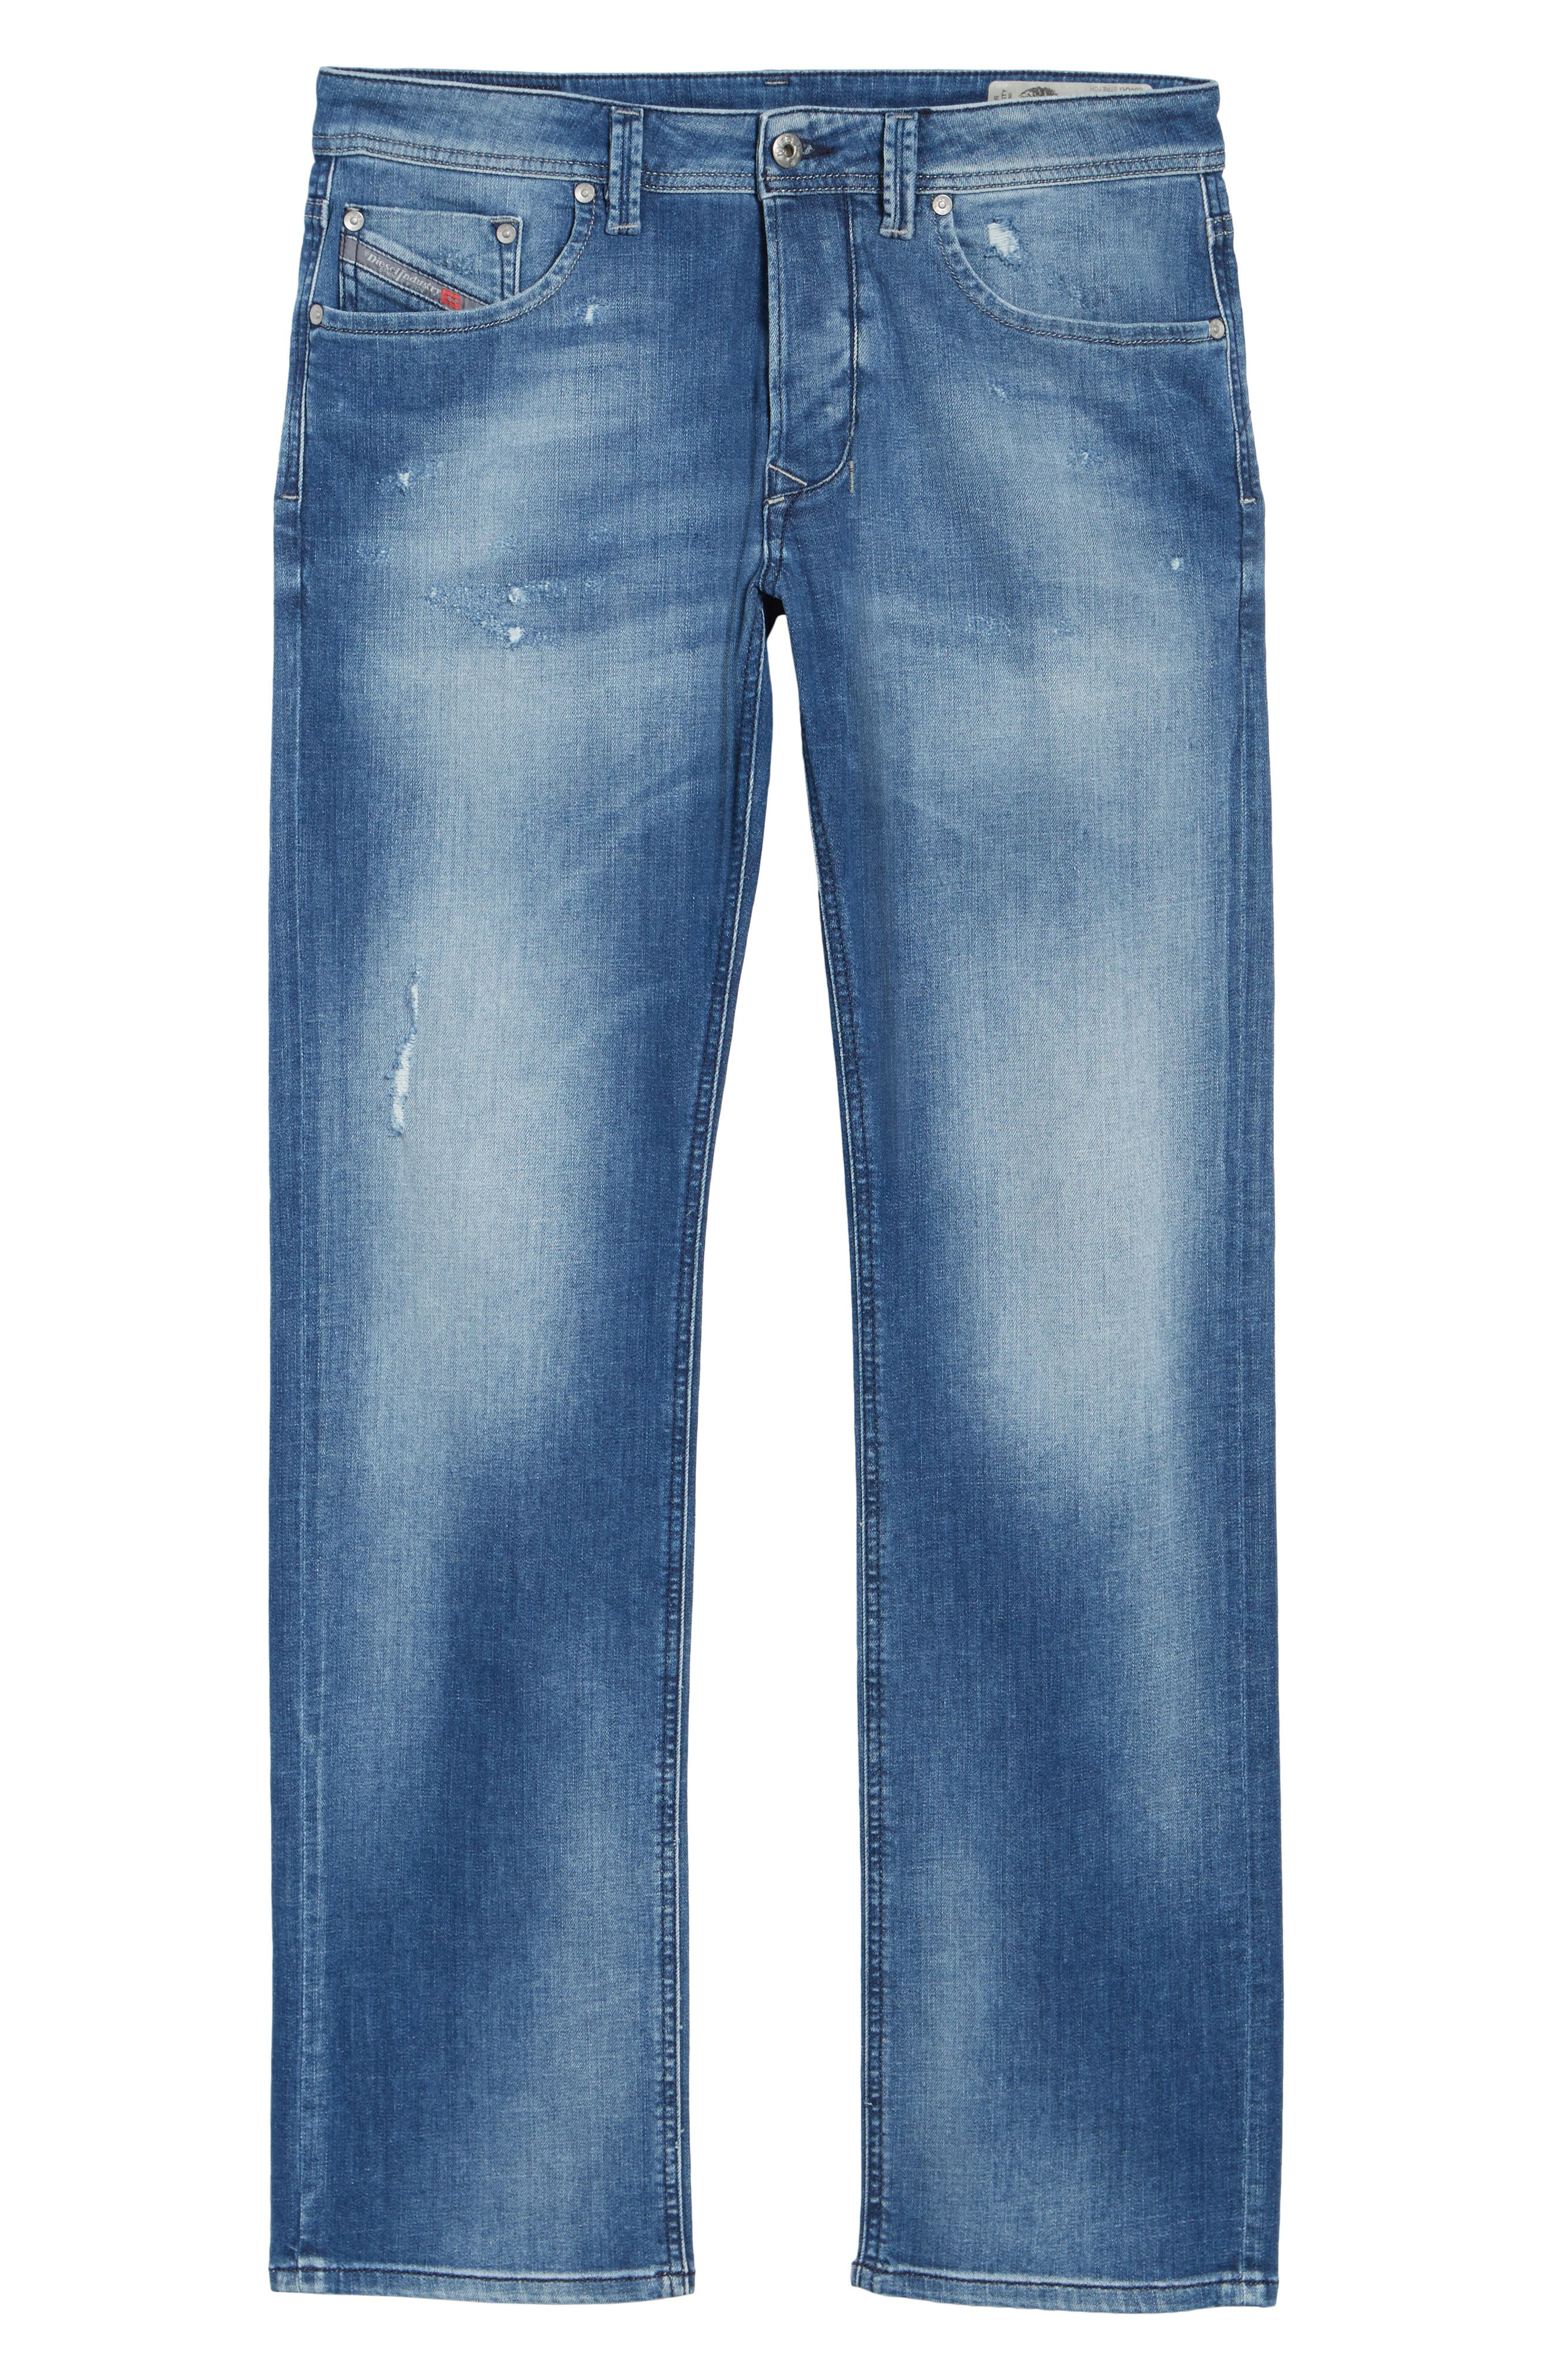 Larkee Relaxed Fit Jeans,                             Alternate thumbnail 6, color,